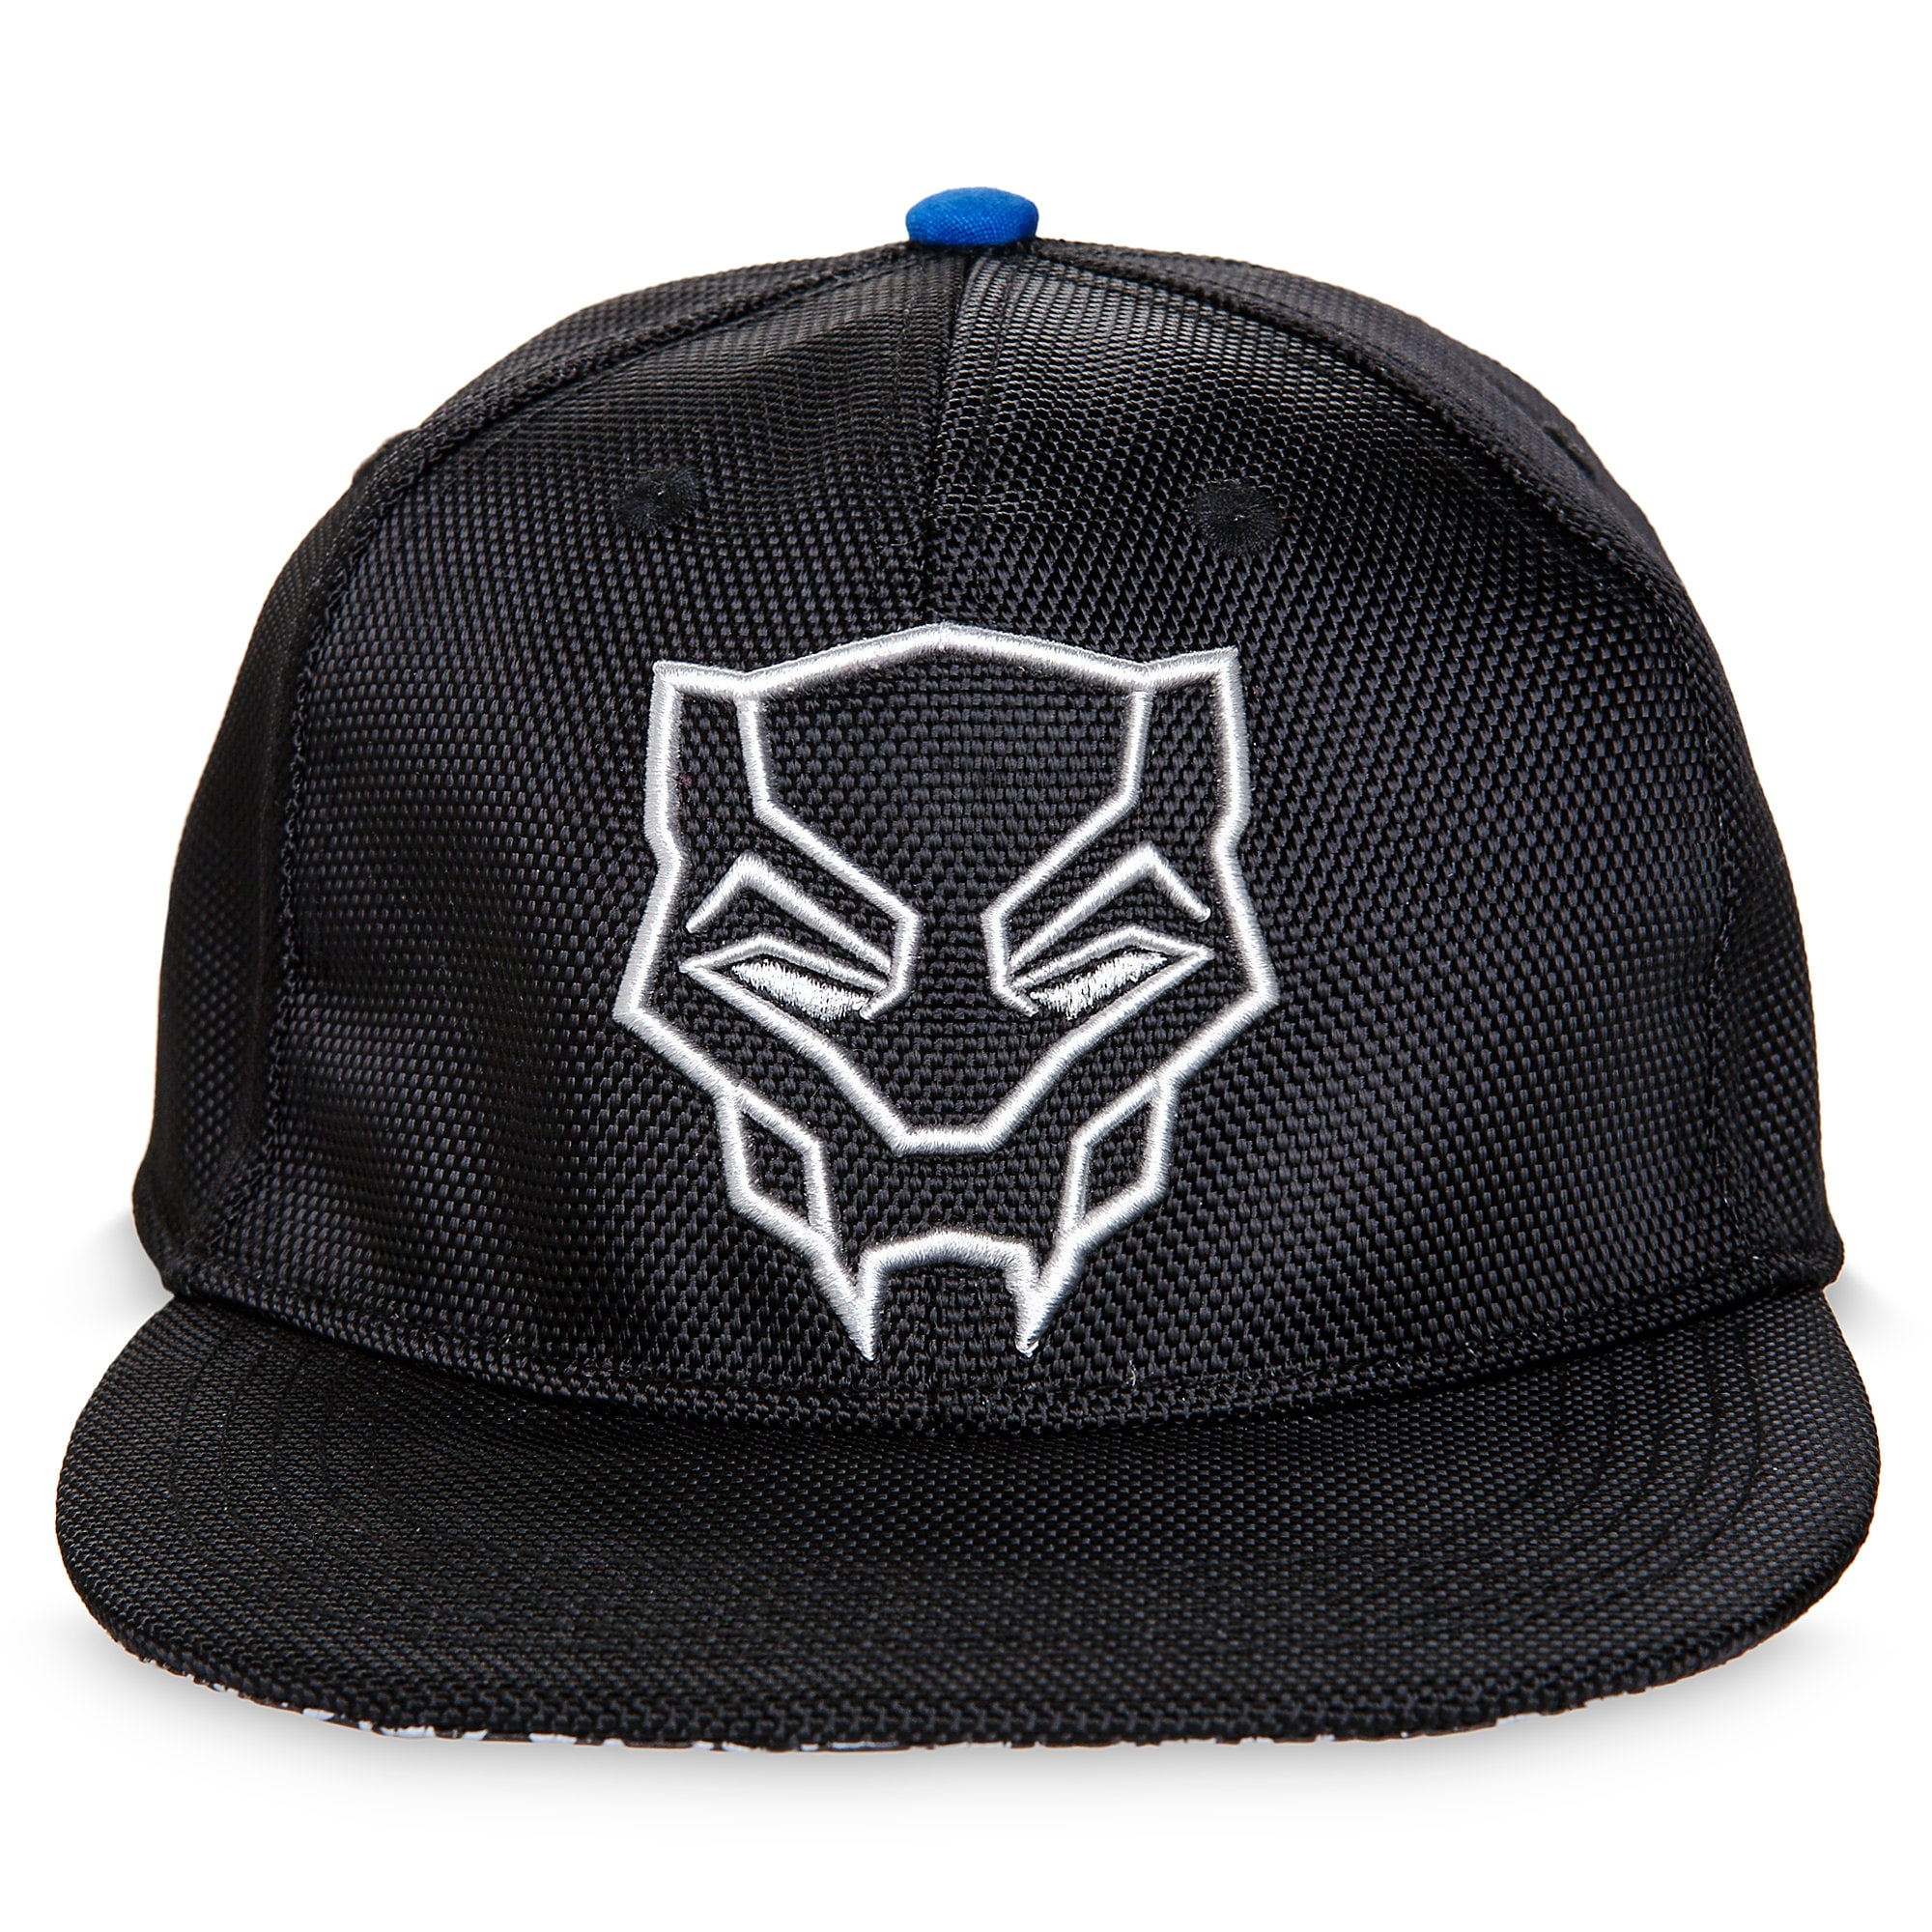 409a2316953d73 Black Panther Hat for Kids | shopDisney